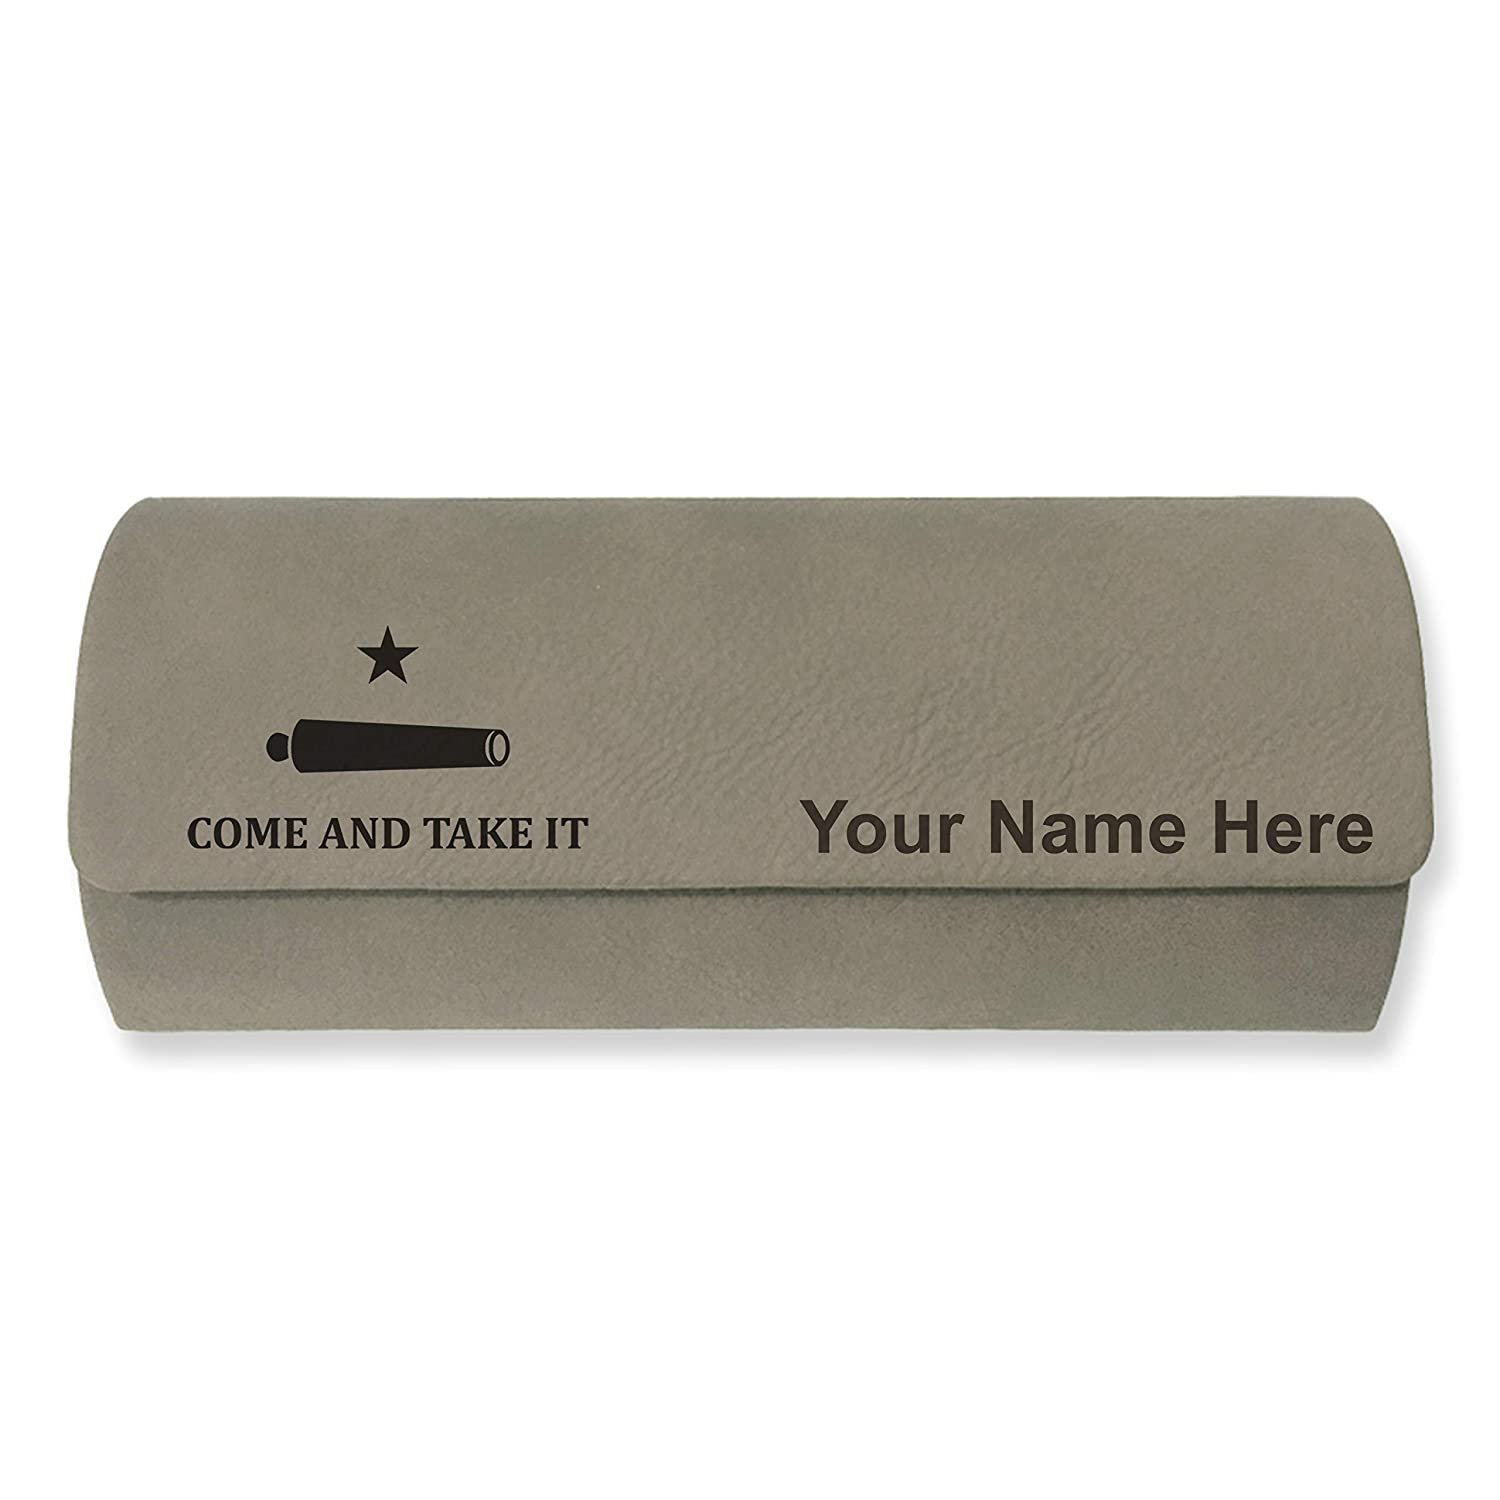 Texas Come and Take It Flag Sunglass Case Personalized Engraving Included